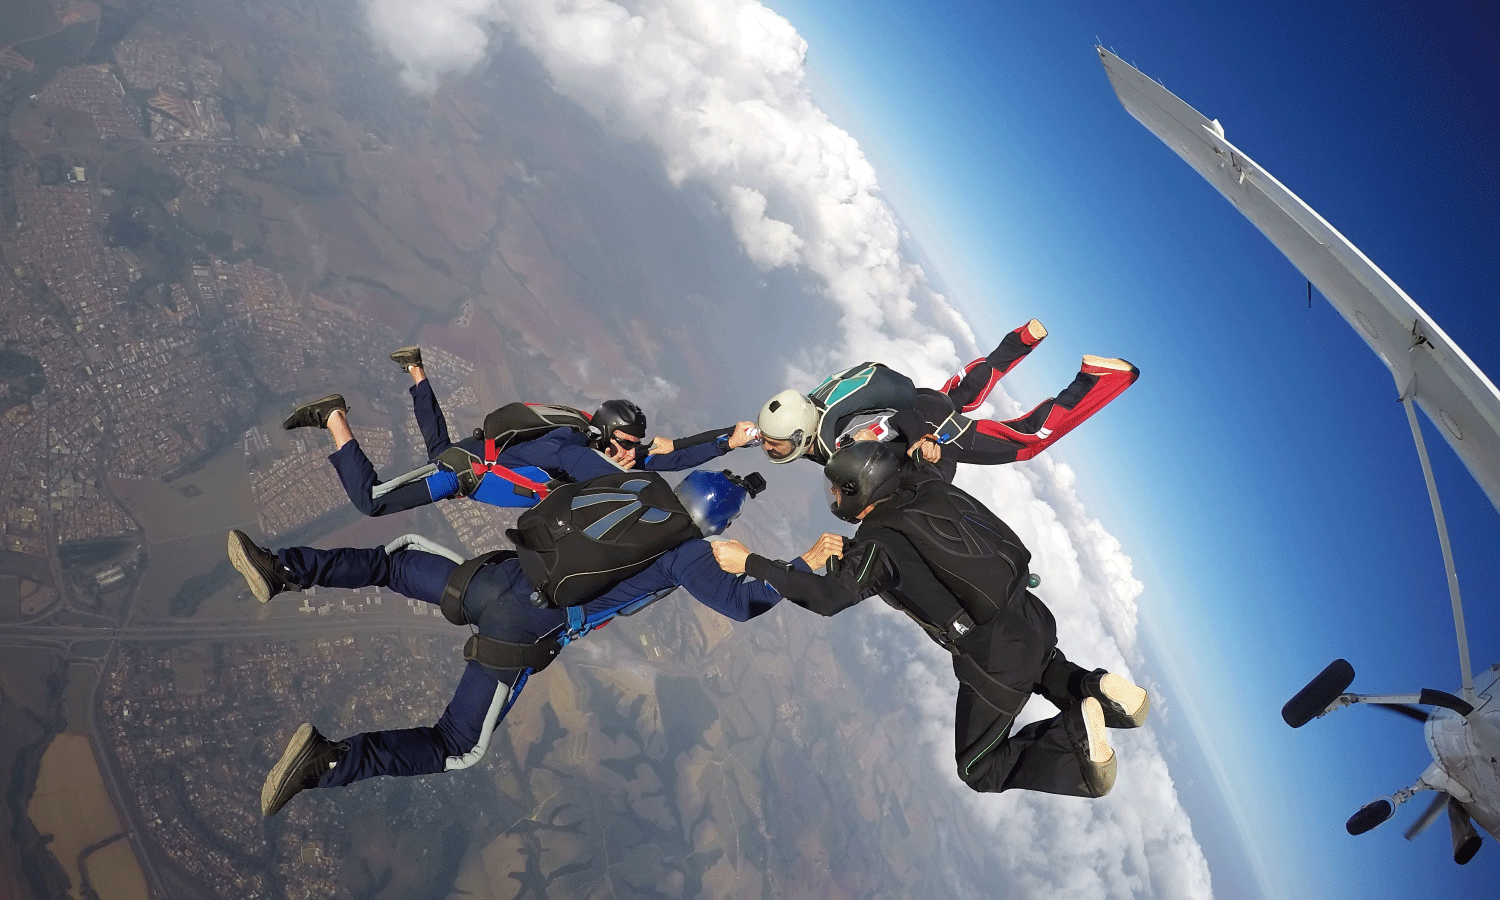 BOSS Program Skydiving Trip